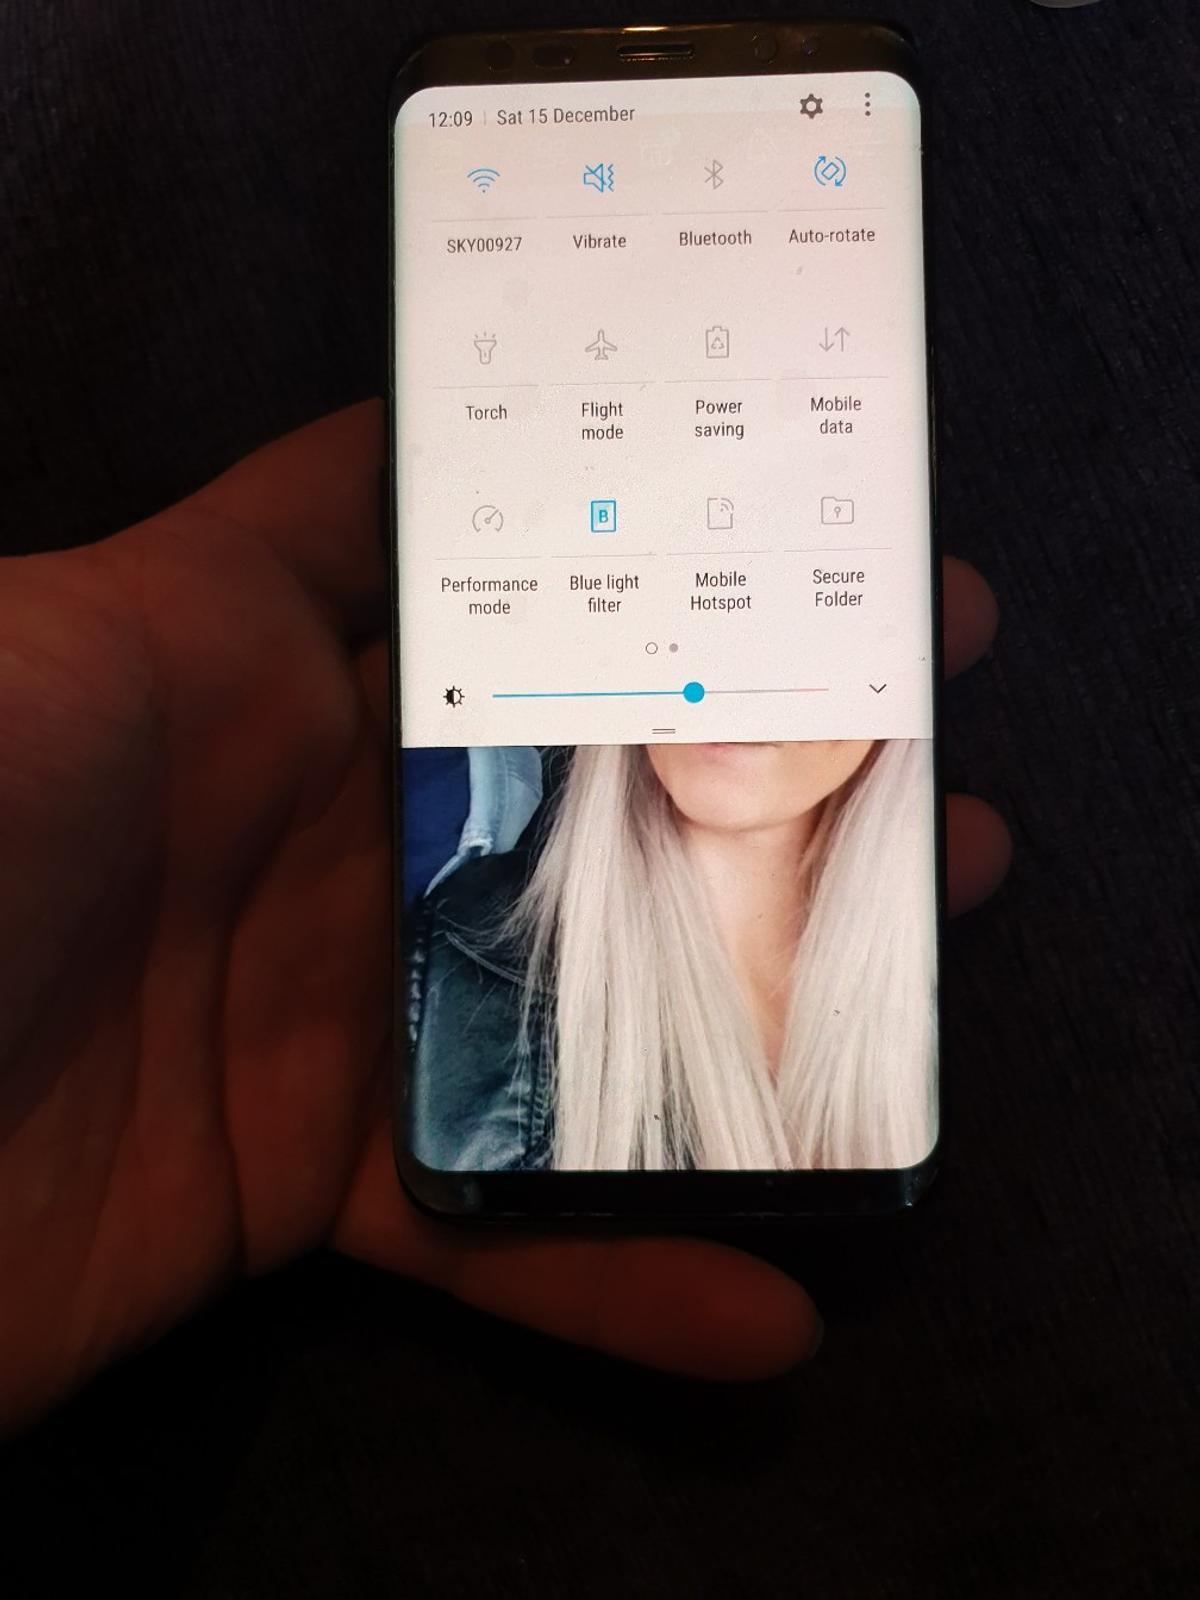 Samsung s8 in S62 Rotherham for £225 00 for sale - Shpock